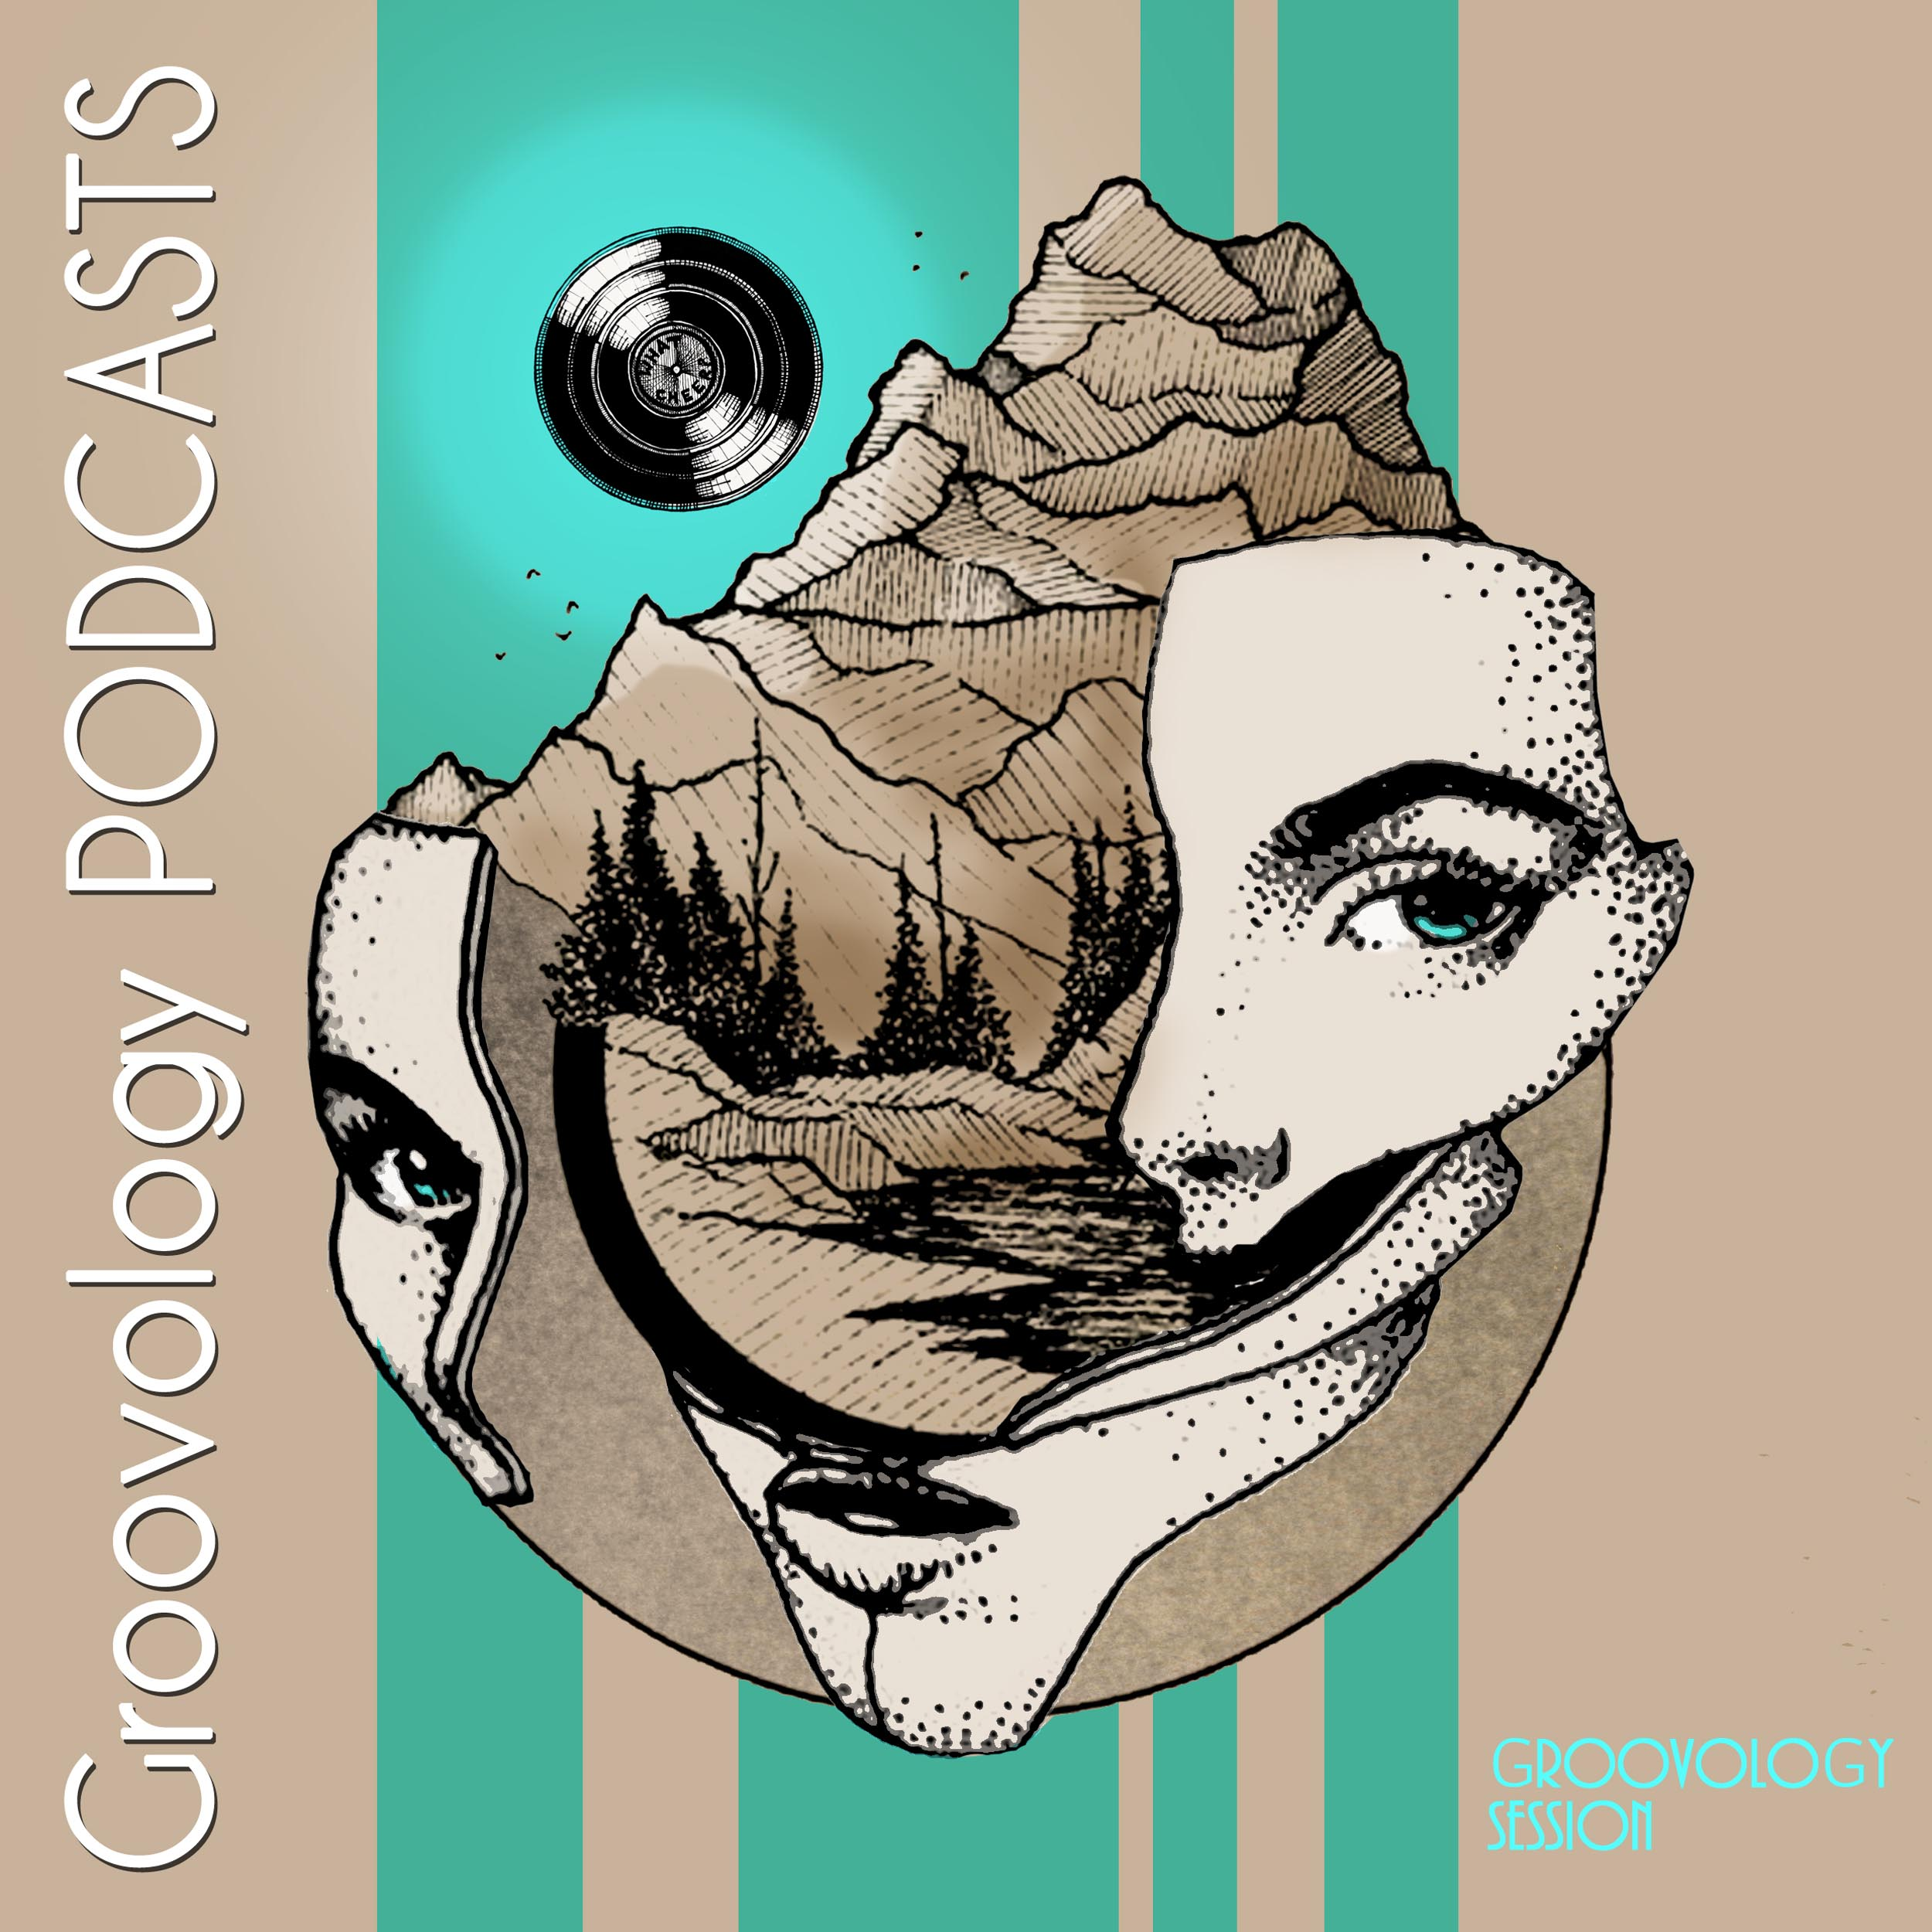 Groovology Podcast Series